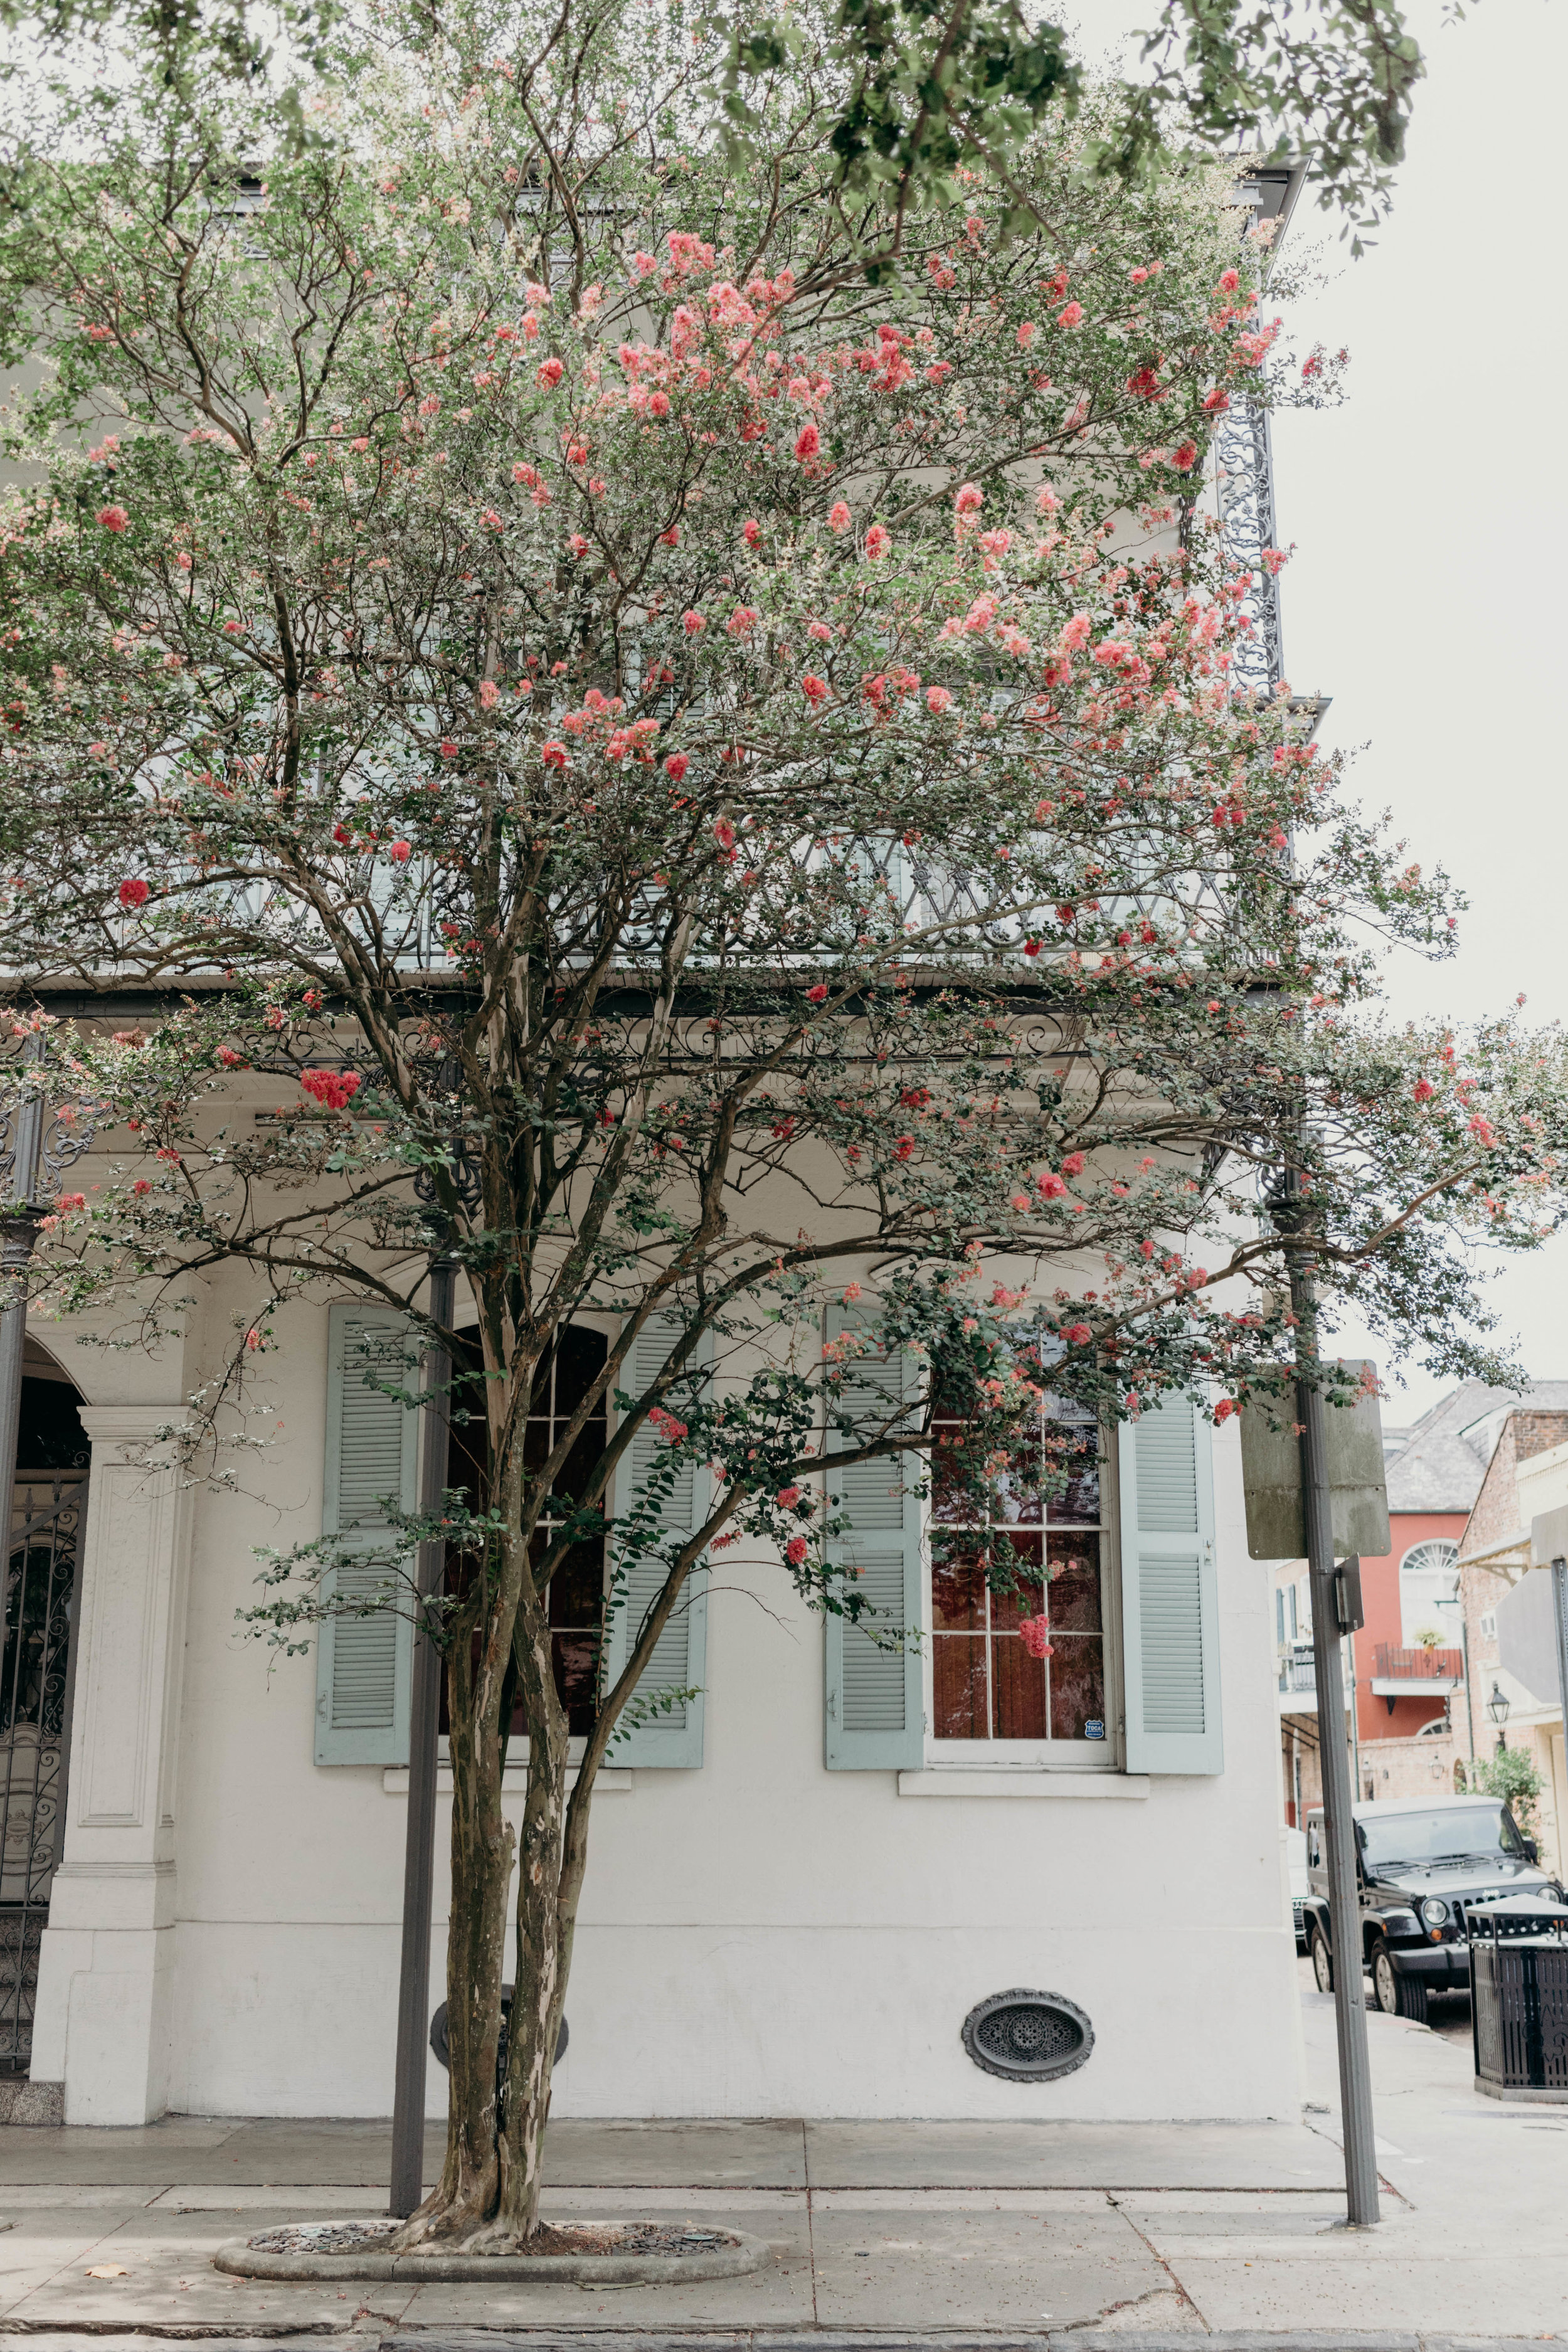 Snapshots of a Summer in the South | On the Street Where We Live ( aretherelilactrees.com )  The Big Easy, NOLA, New Orleans, Louisiana, Chartres Street, architecture, crepe myrtle